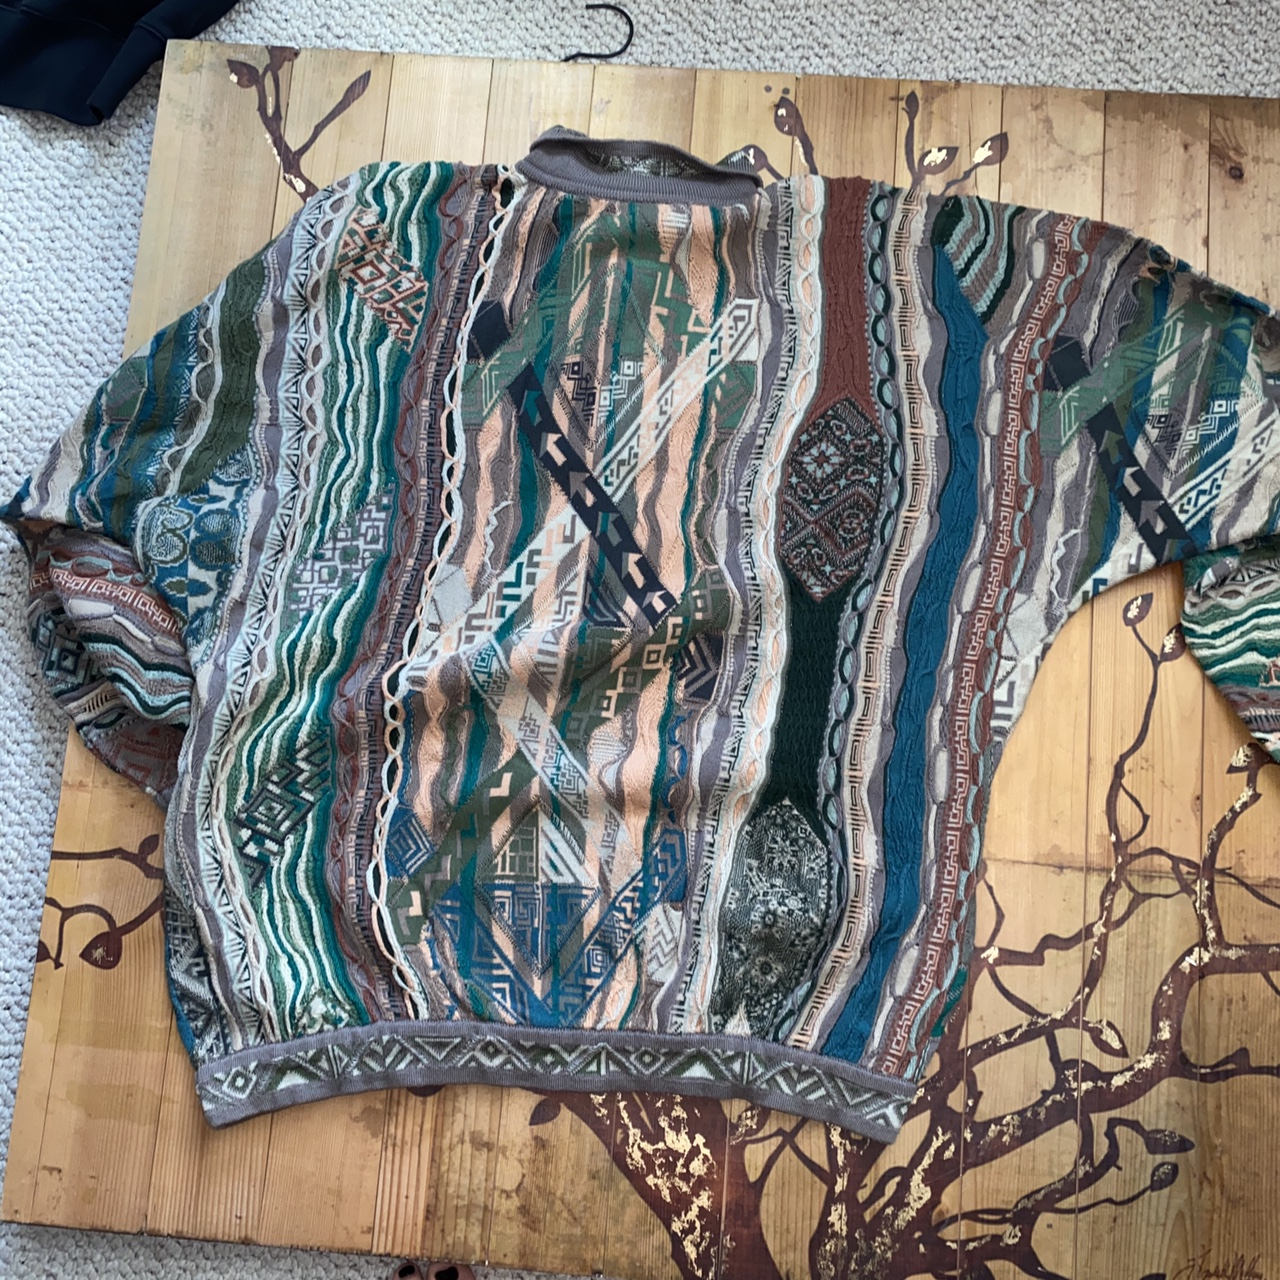 Product Image 4 - Coogi sweater  ✔️pre-owned / brand